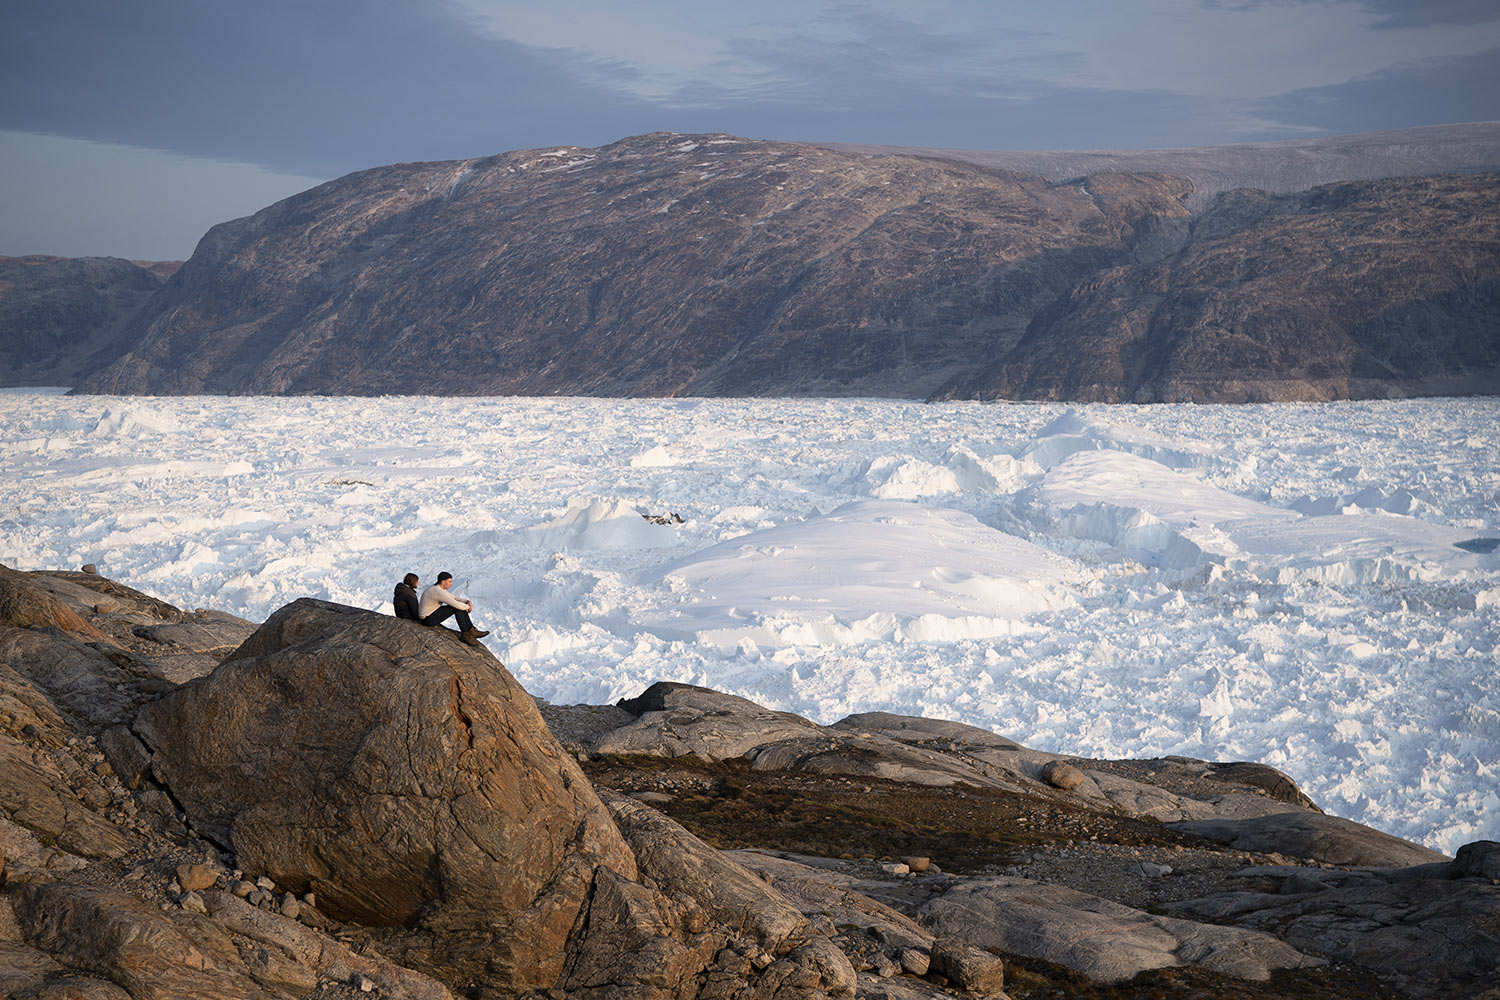 NYU student researchers sit on top of a rock overlooking the Helheim glacier on Aug. 16, 2019, in Greenland. Summer 2019 is hitting the island hard with record-shattering heat and extreme melt. Scientists estimate that by the end of the summer, about 440 billion tons of ice, maybe more, will have melted or calved off Greenland's giant ice sheet. Helheim glacier has shrunk about 6 miles (10 kilometers) since scientists visited in 2005. (AP Photo/Felipe Dana)